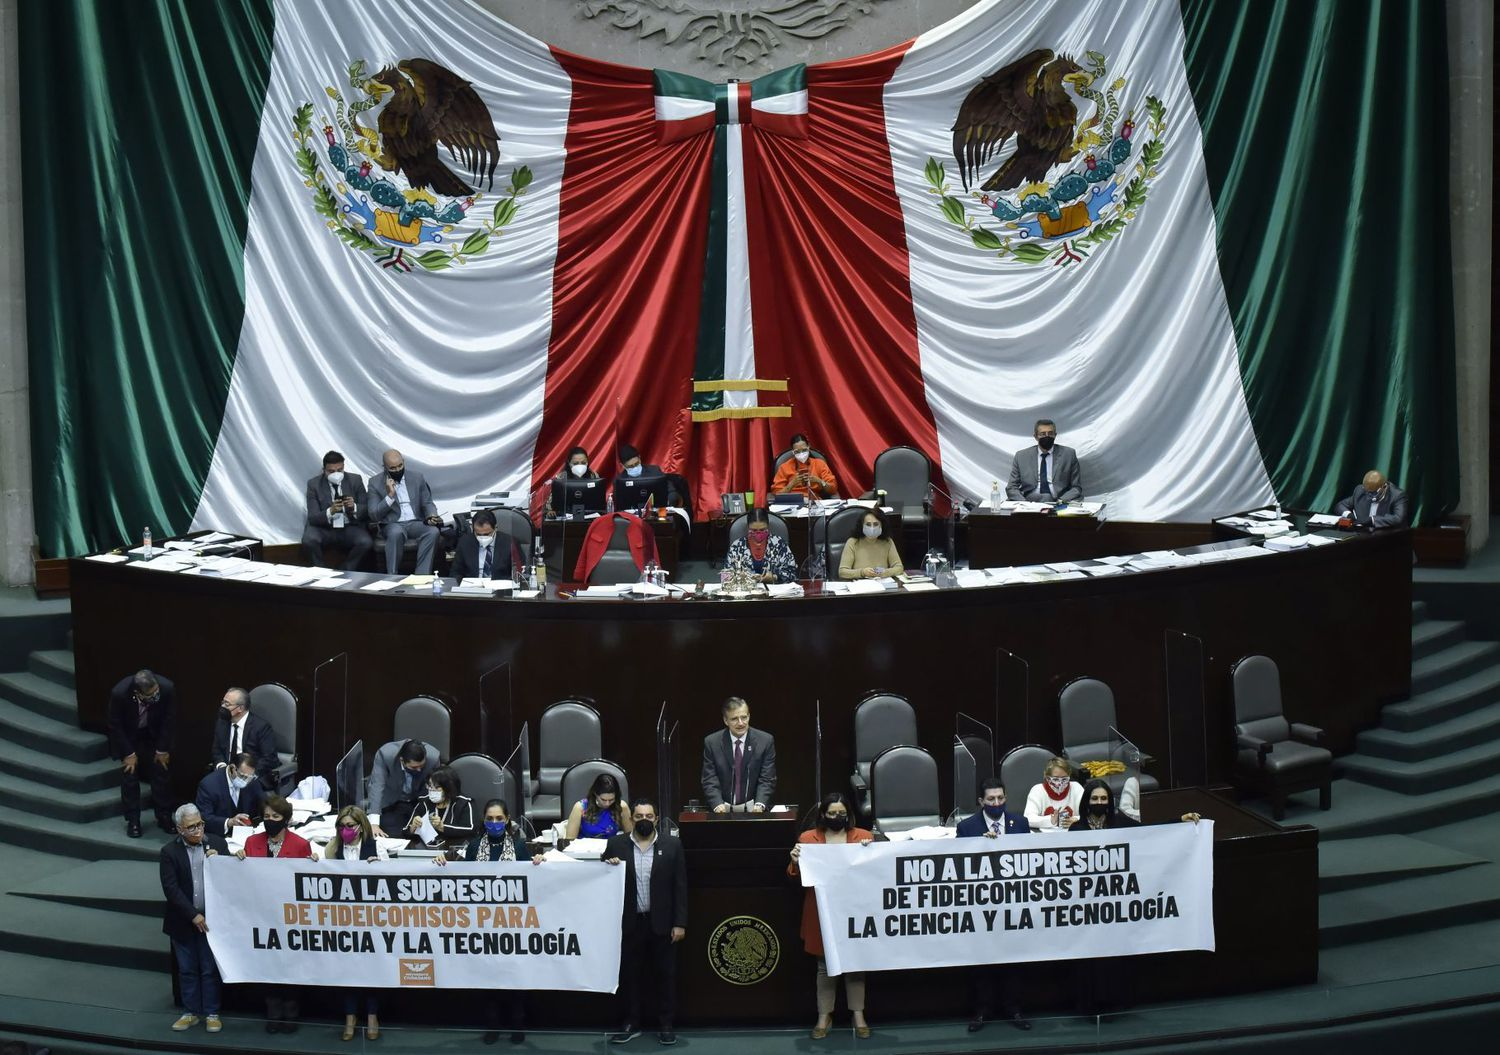 A protest of the Mexican deputies against the elimination of the trusts.